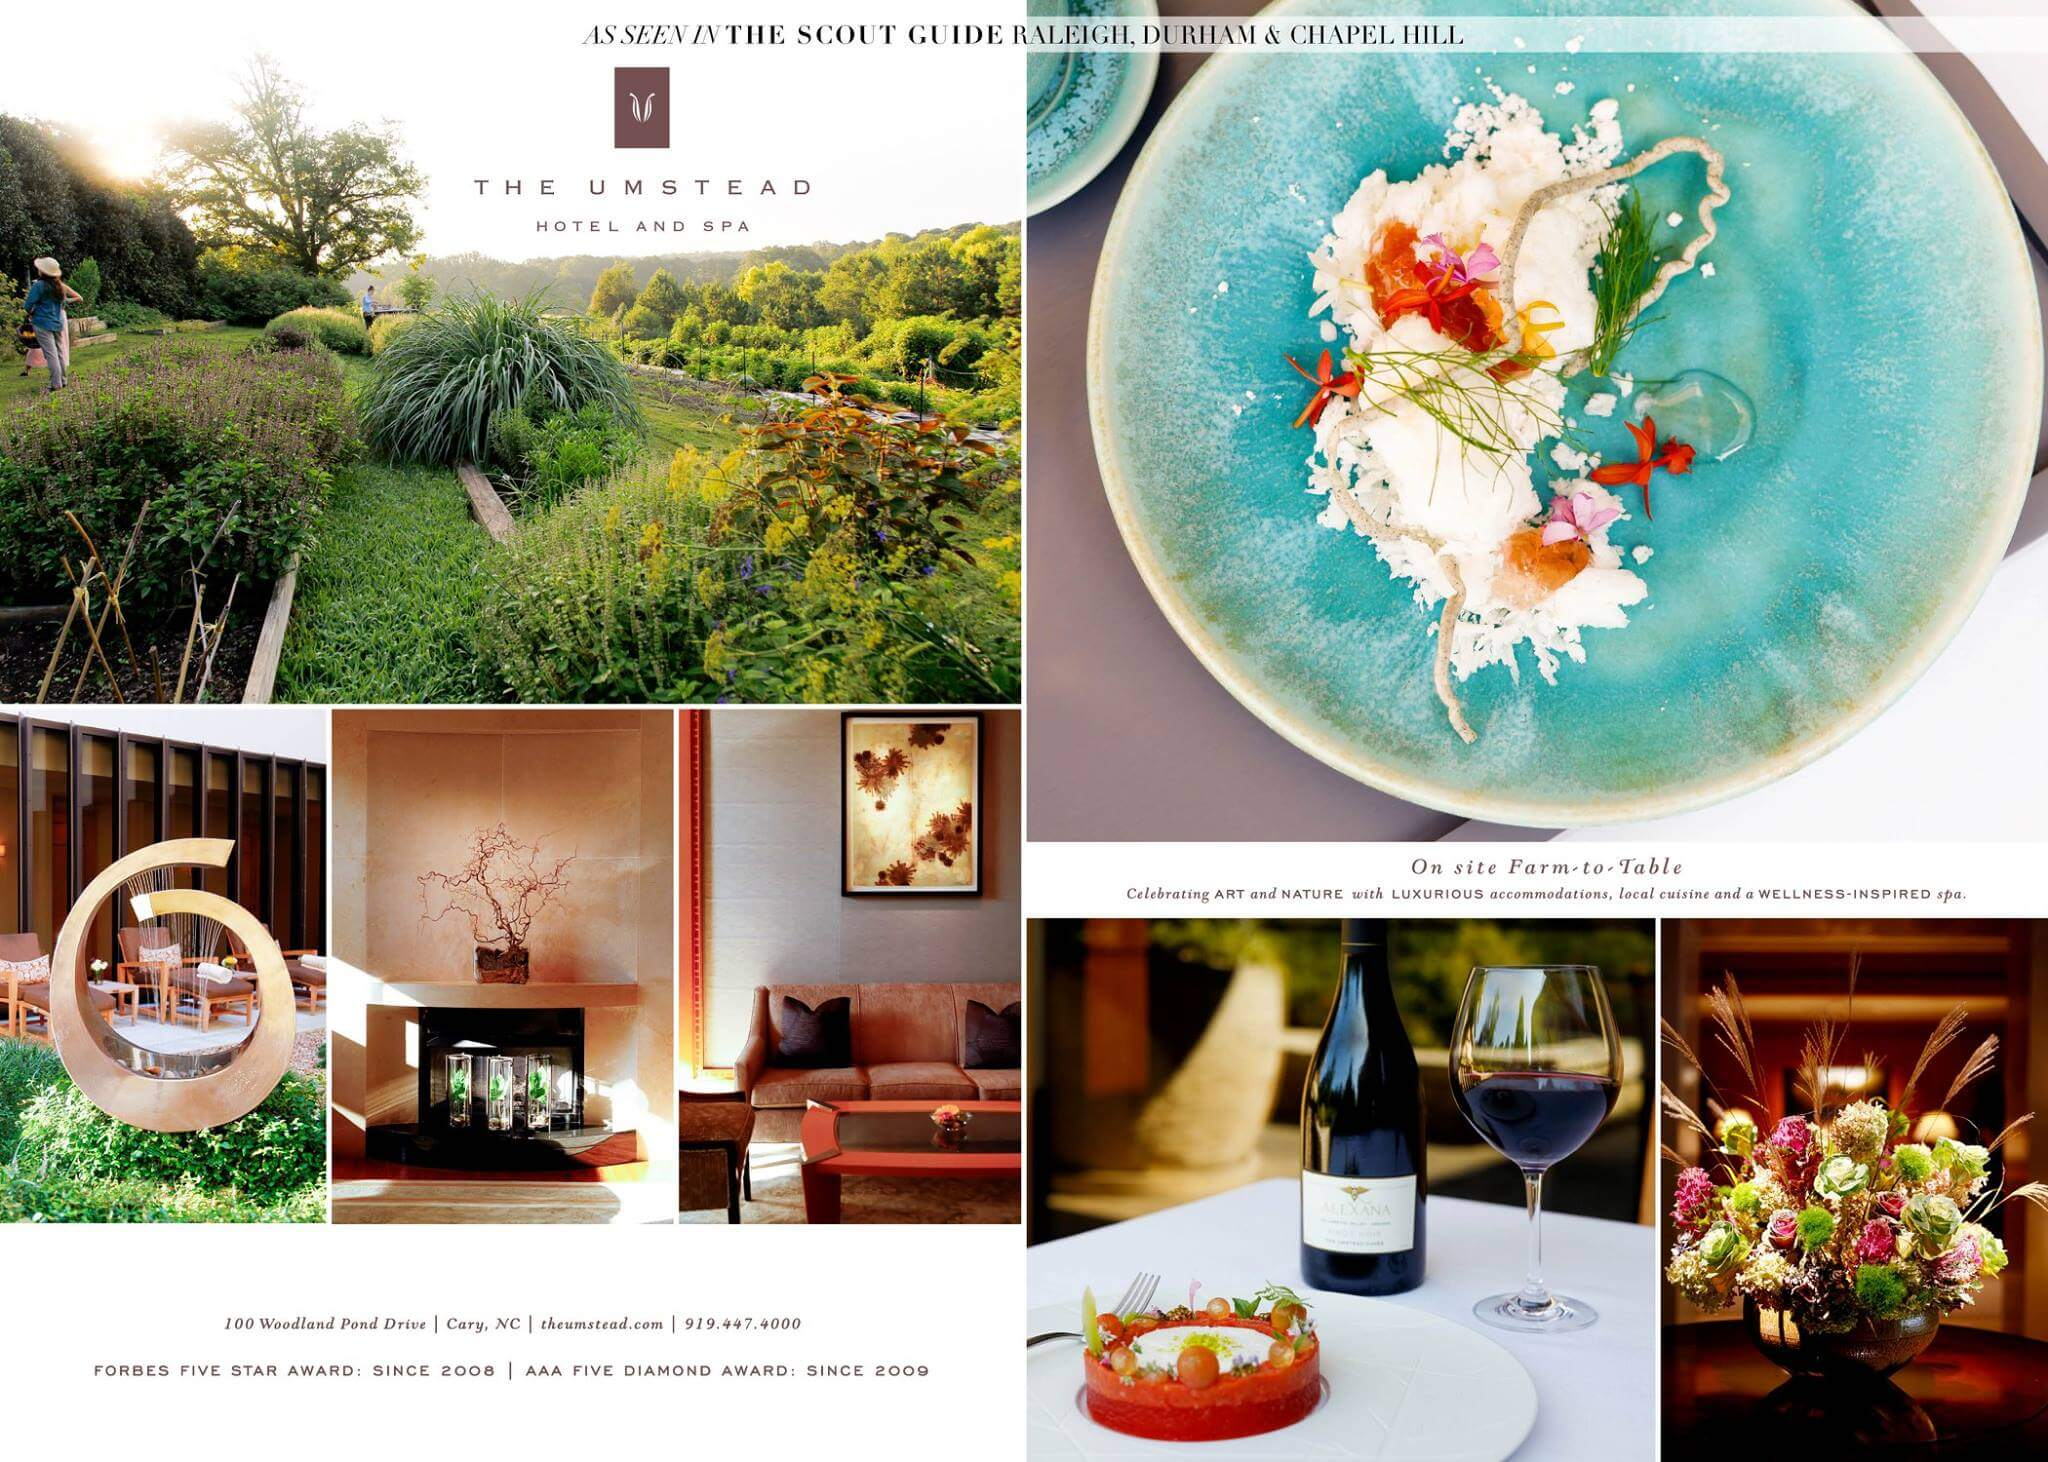 The Umstead Hotel and Spa in The Scout Guide